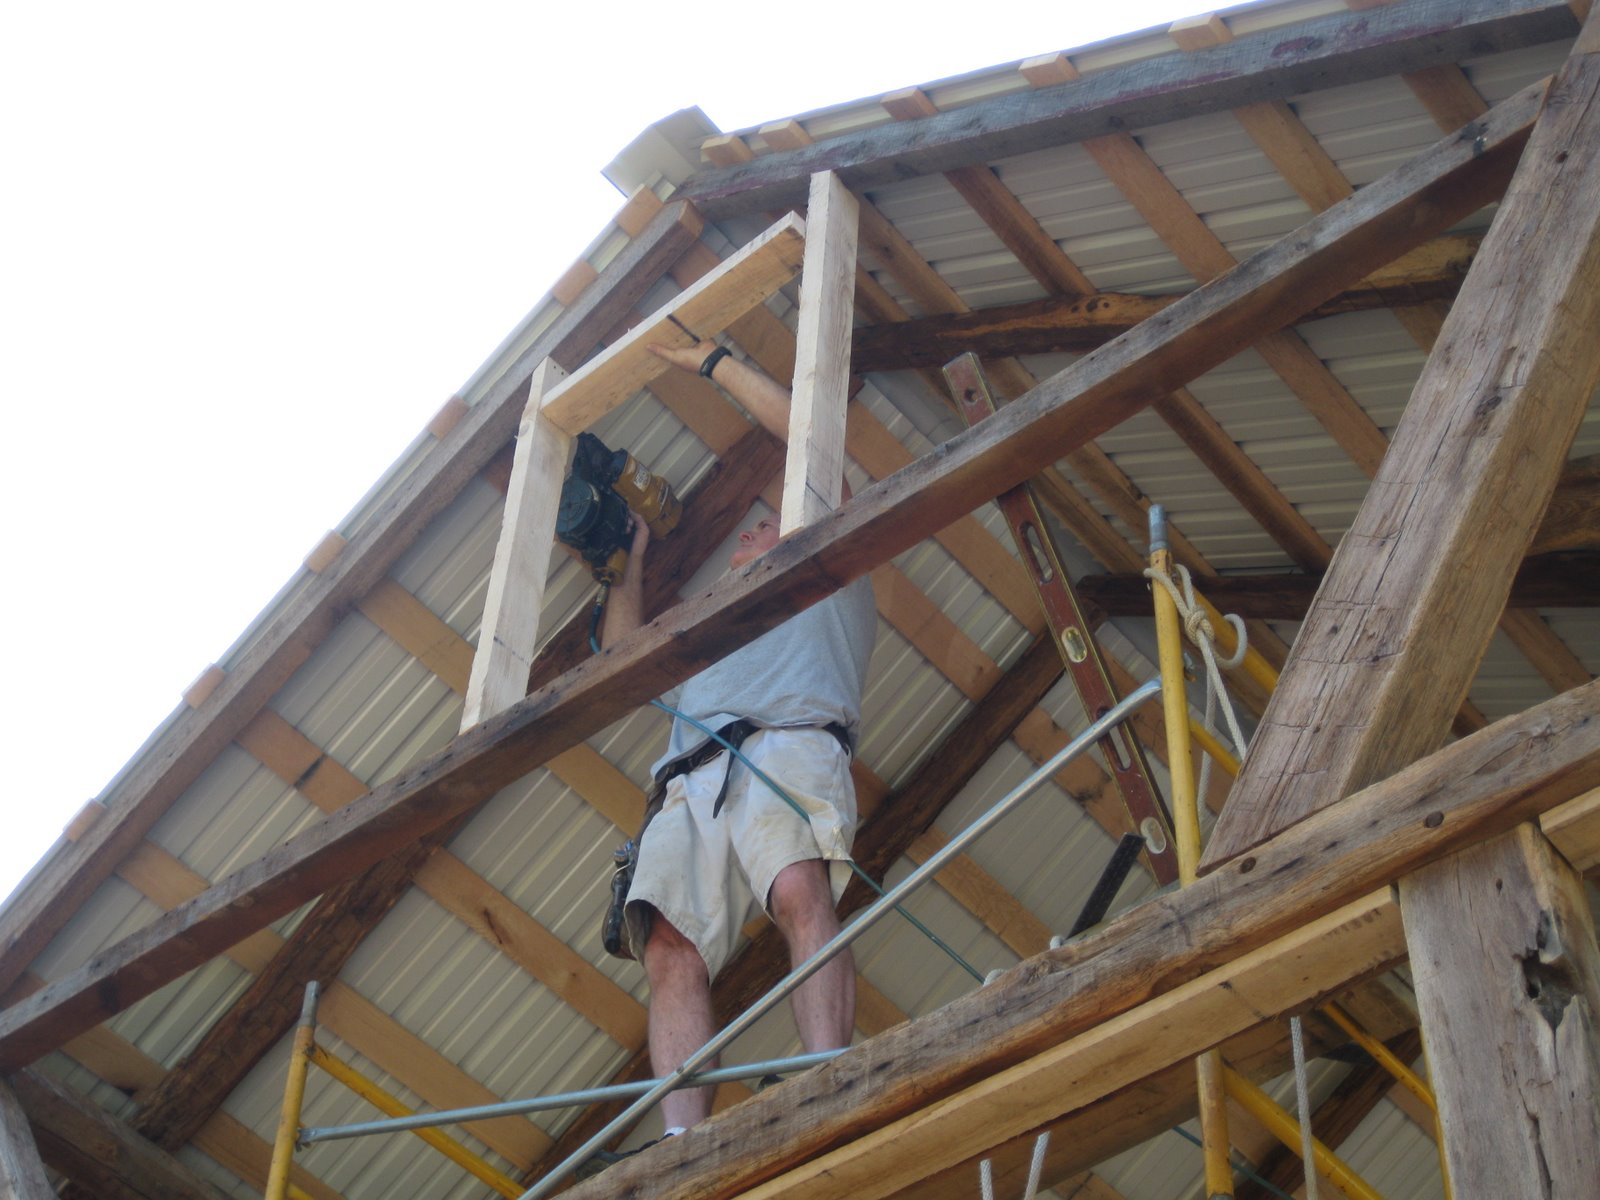 Here I am test fitting the gable vent into the opening.  sc 1 st  The Beaumont Barn & The Beaumont Barn: Framing the Gable Vents